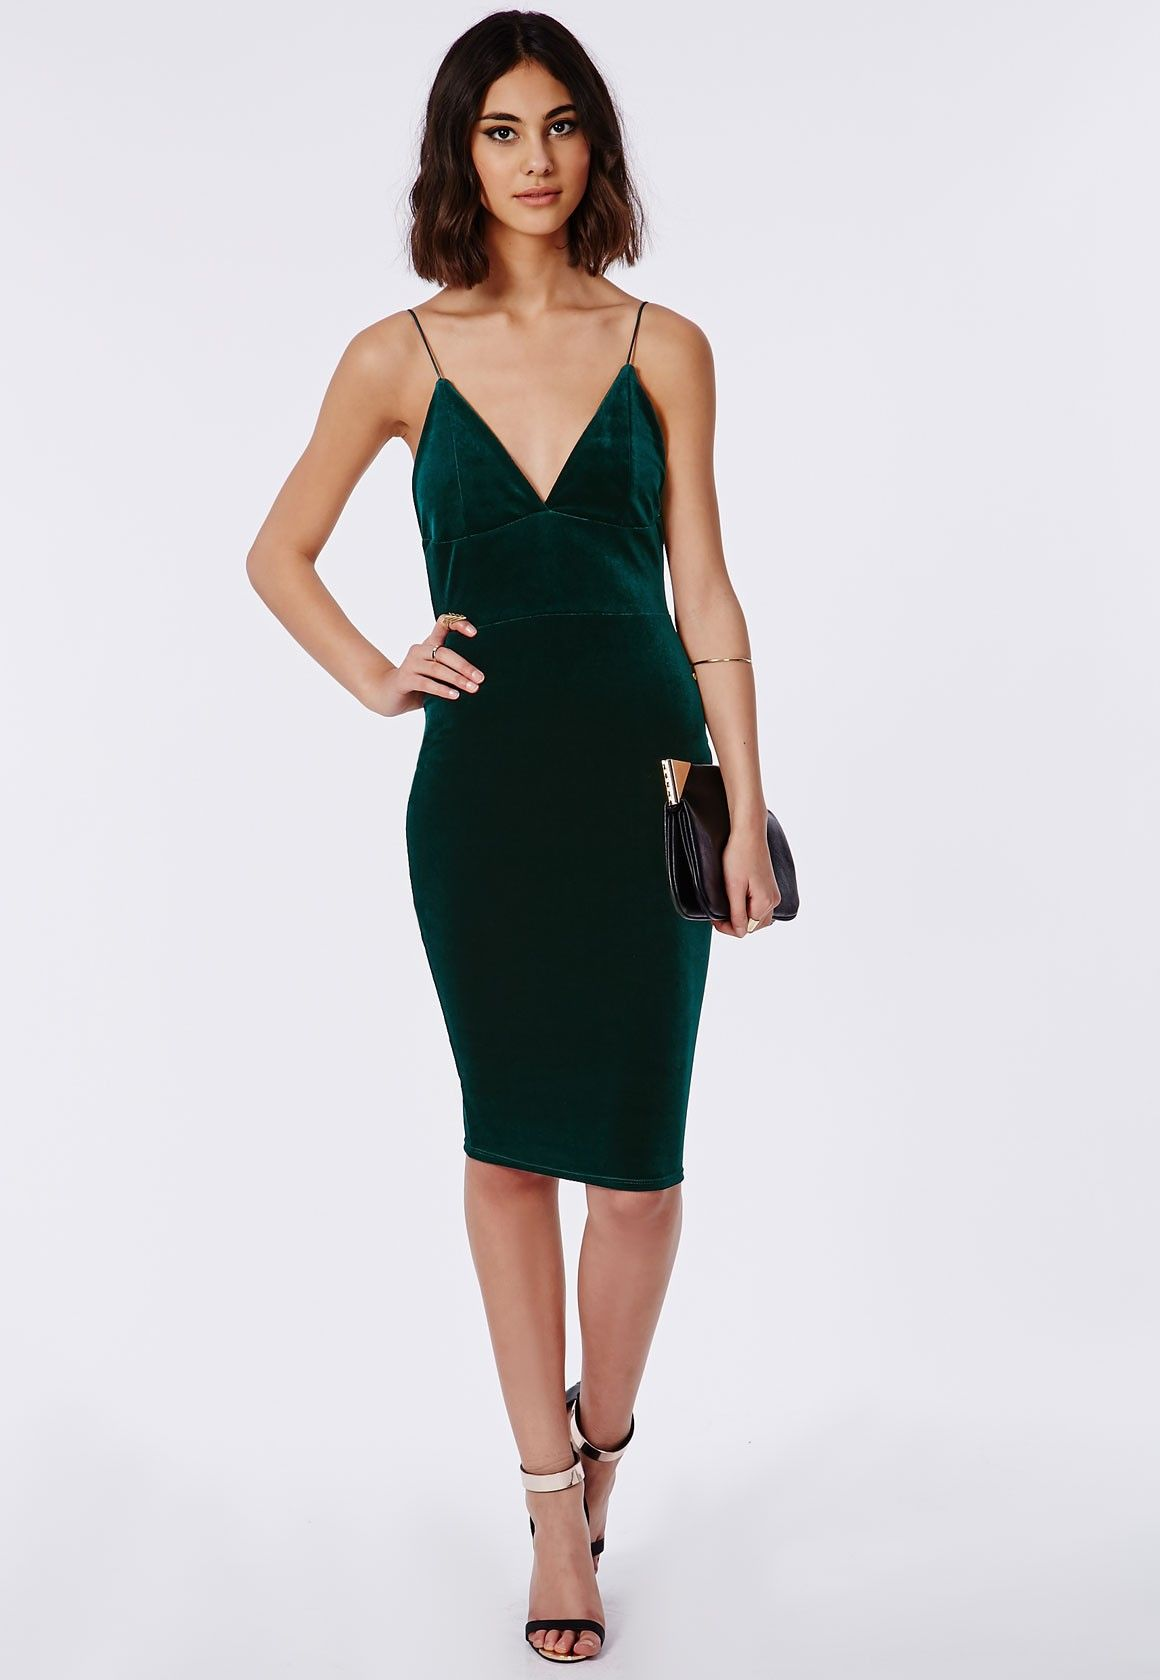 Dresses Online- Women's Online Dress Shop USA